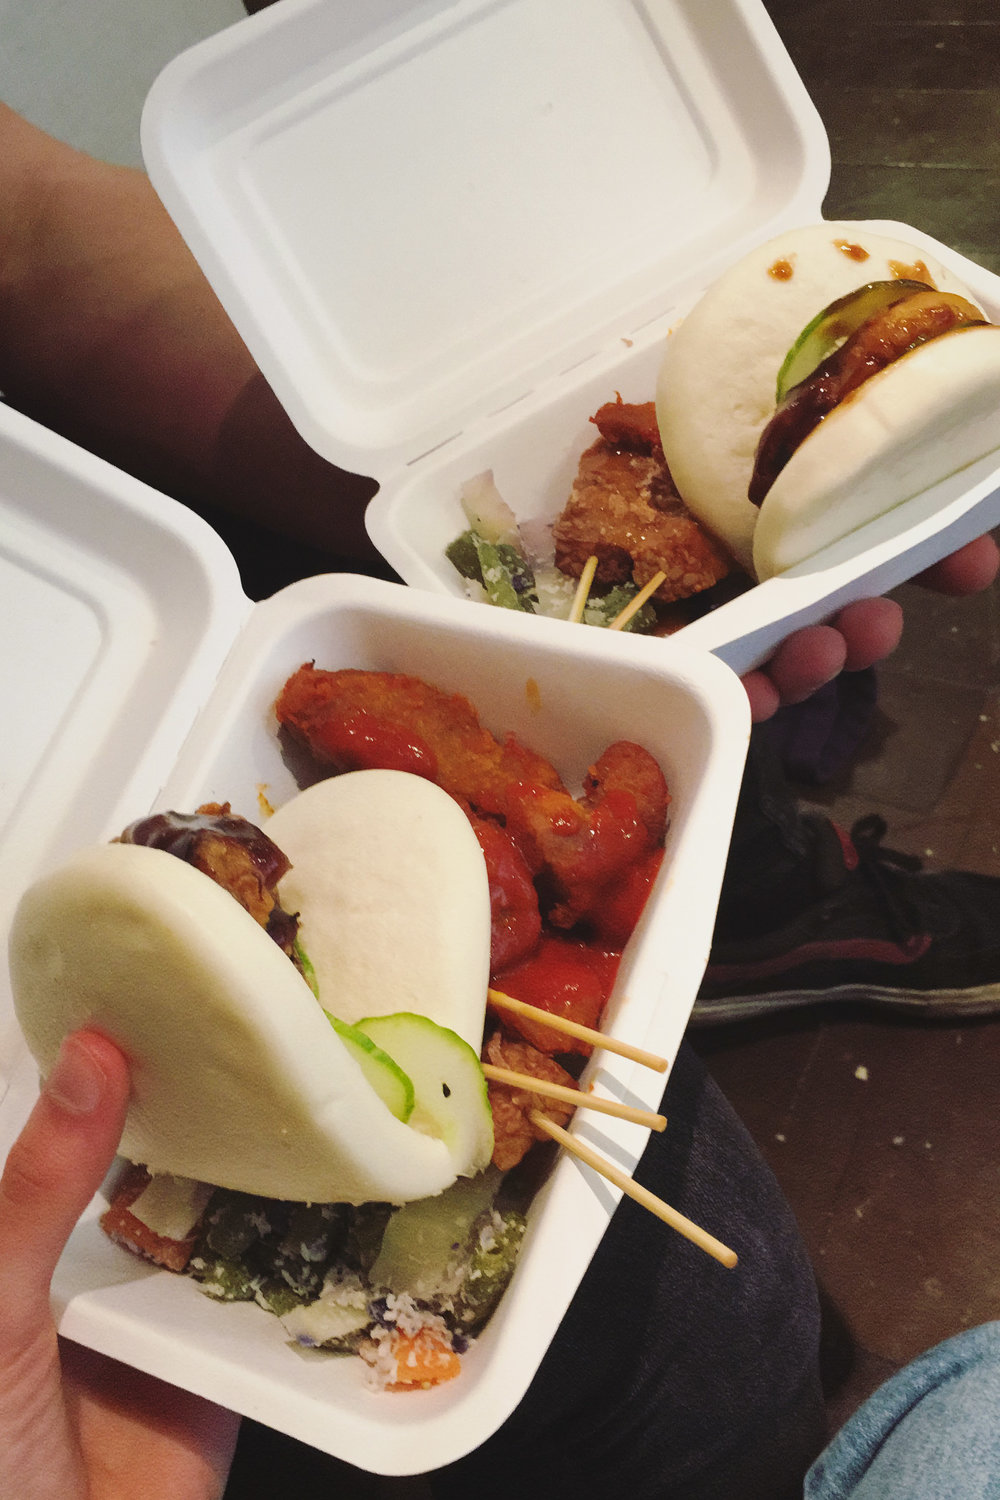 Eastern-style munchie boxes at Glasgow Vegan Festival